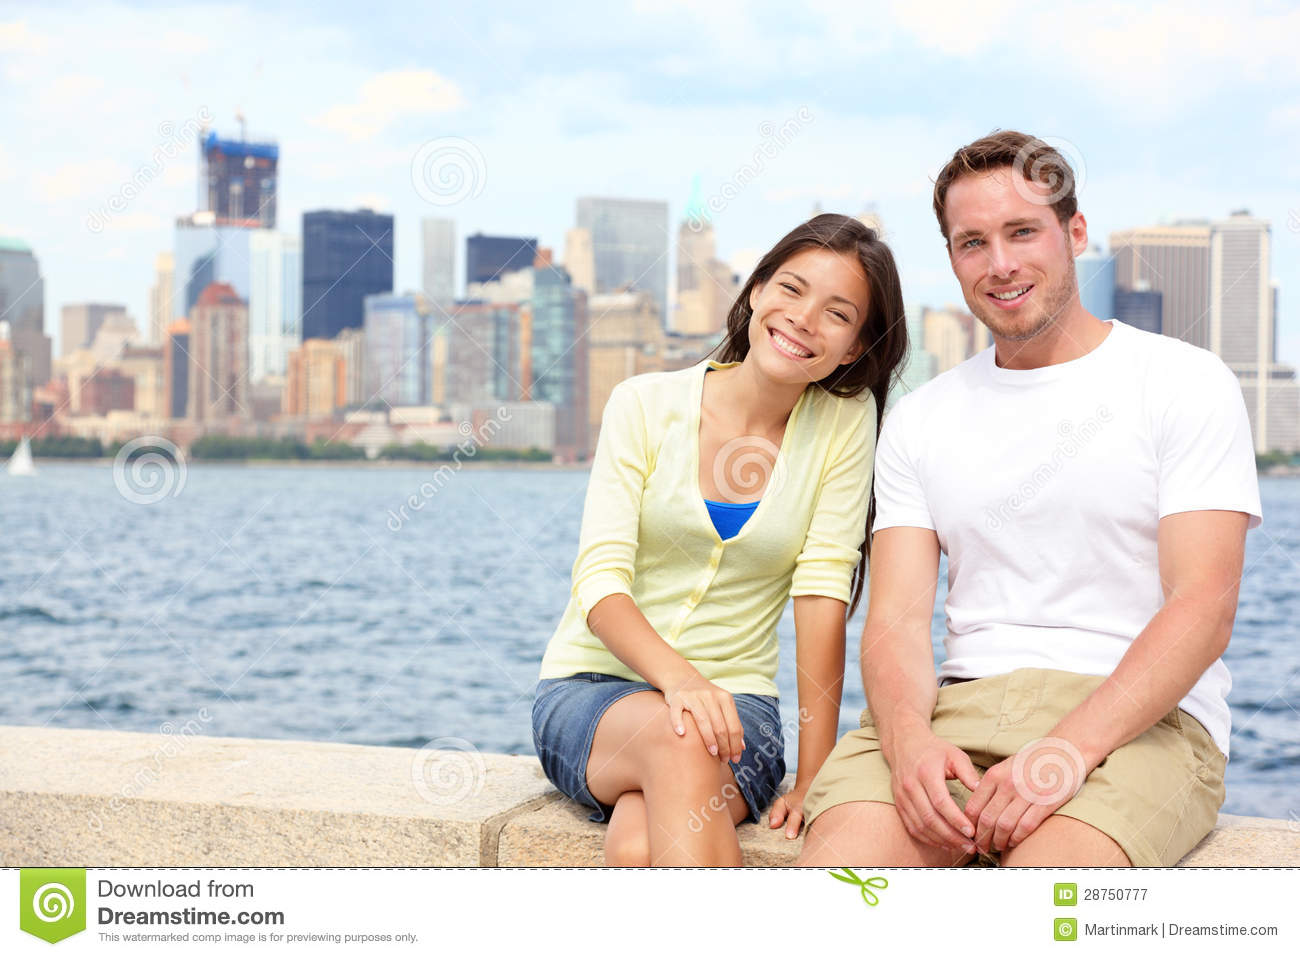 york asian singles New york is known as the empire state and asianpeoplemeetcom is here to  bring their asian singles together search single asian men in new york.